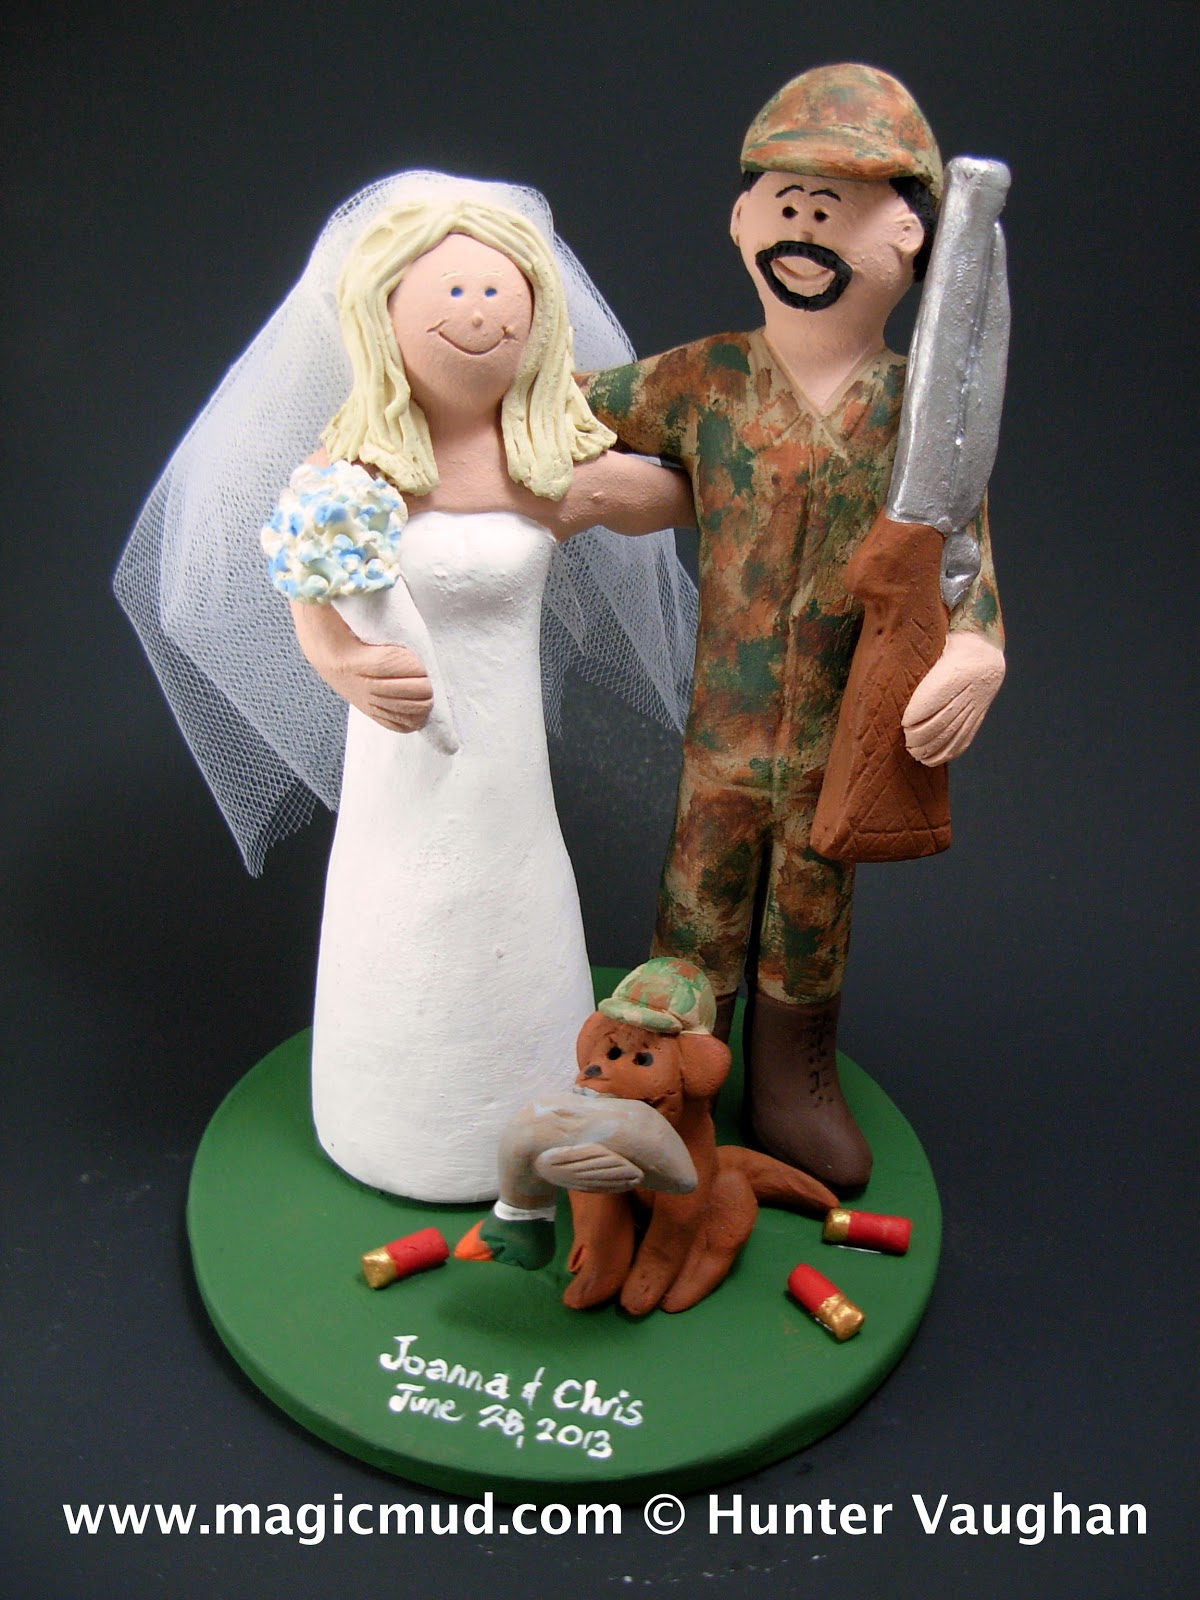 Pin Mossy Oak Wedding Cakes Decorations Ideas Cake on